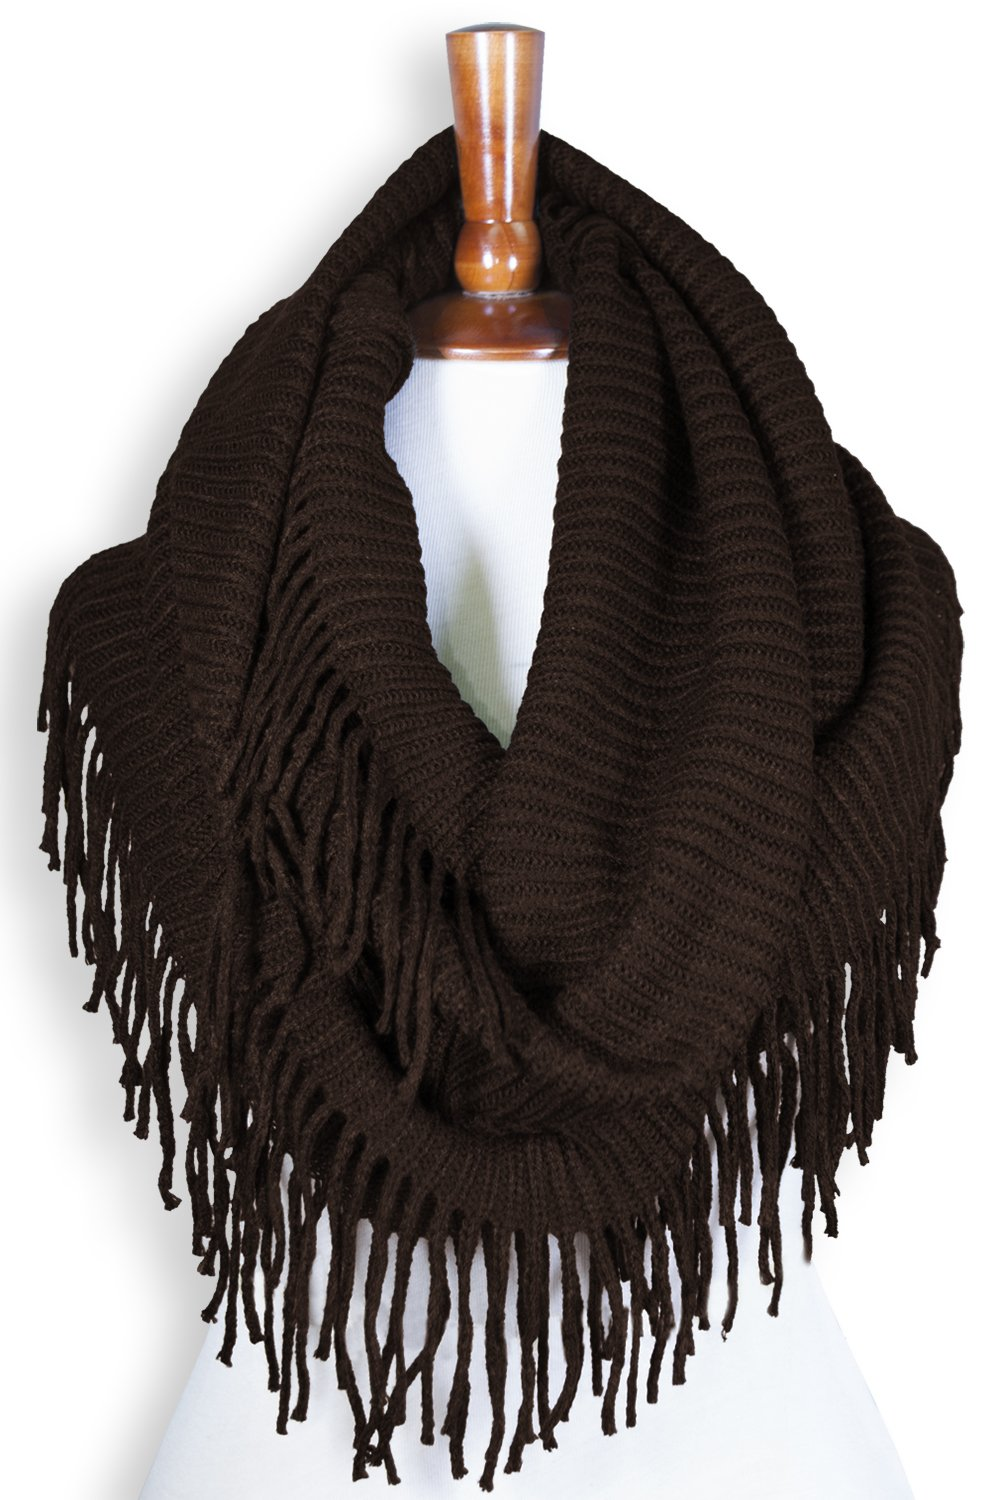 Basico Women Winter Warm Knit Infinity Scarf Tassels Soft Shawl Various Colors (Type G-Coffee)